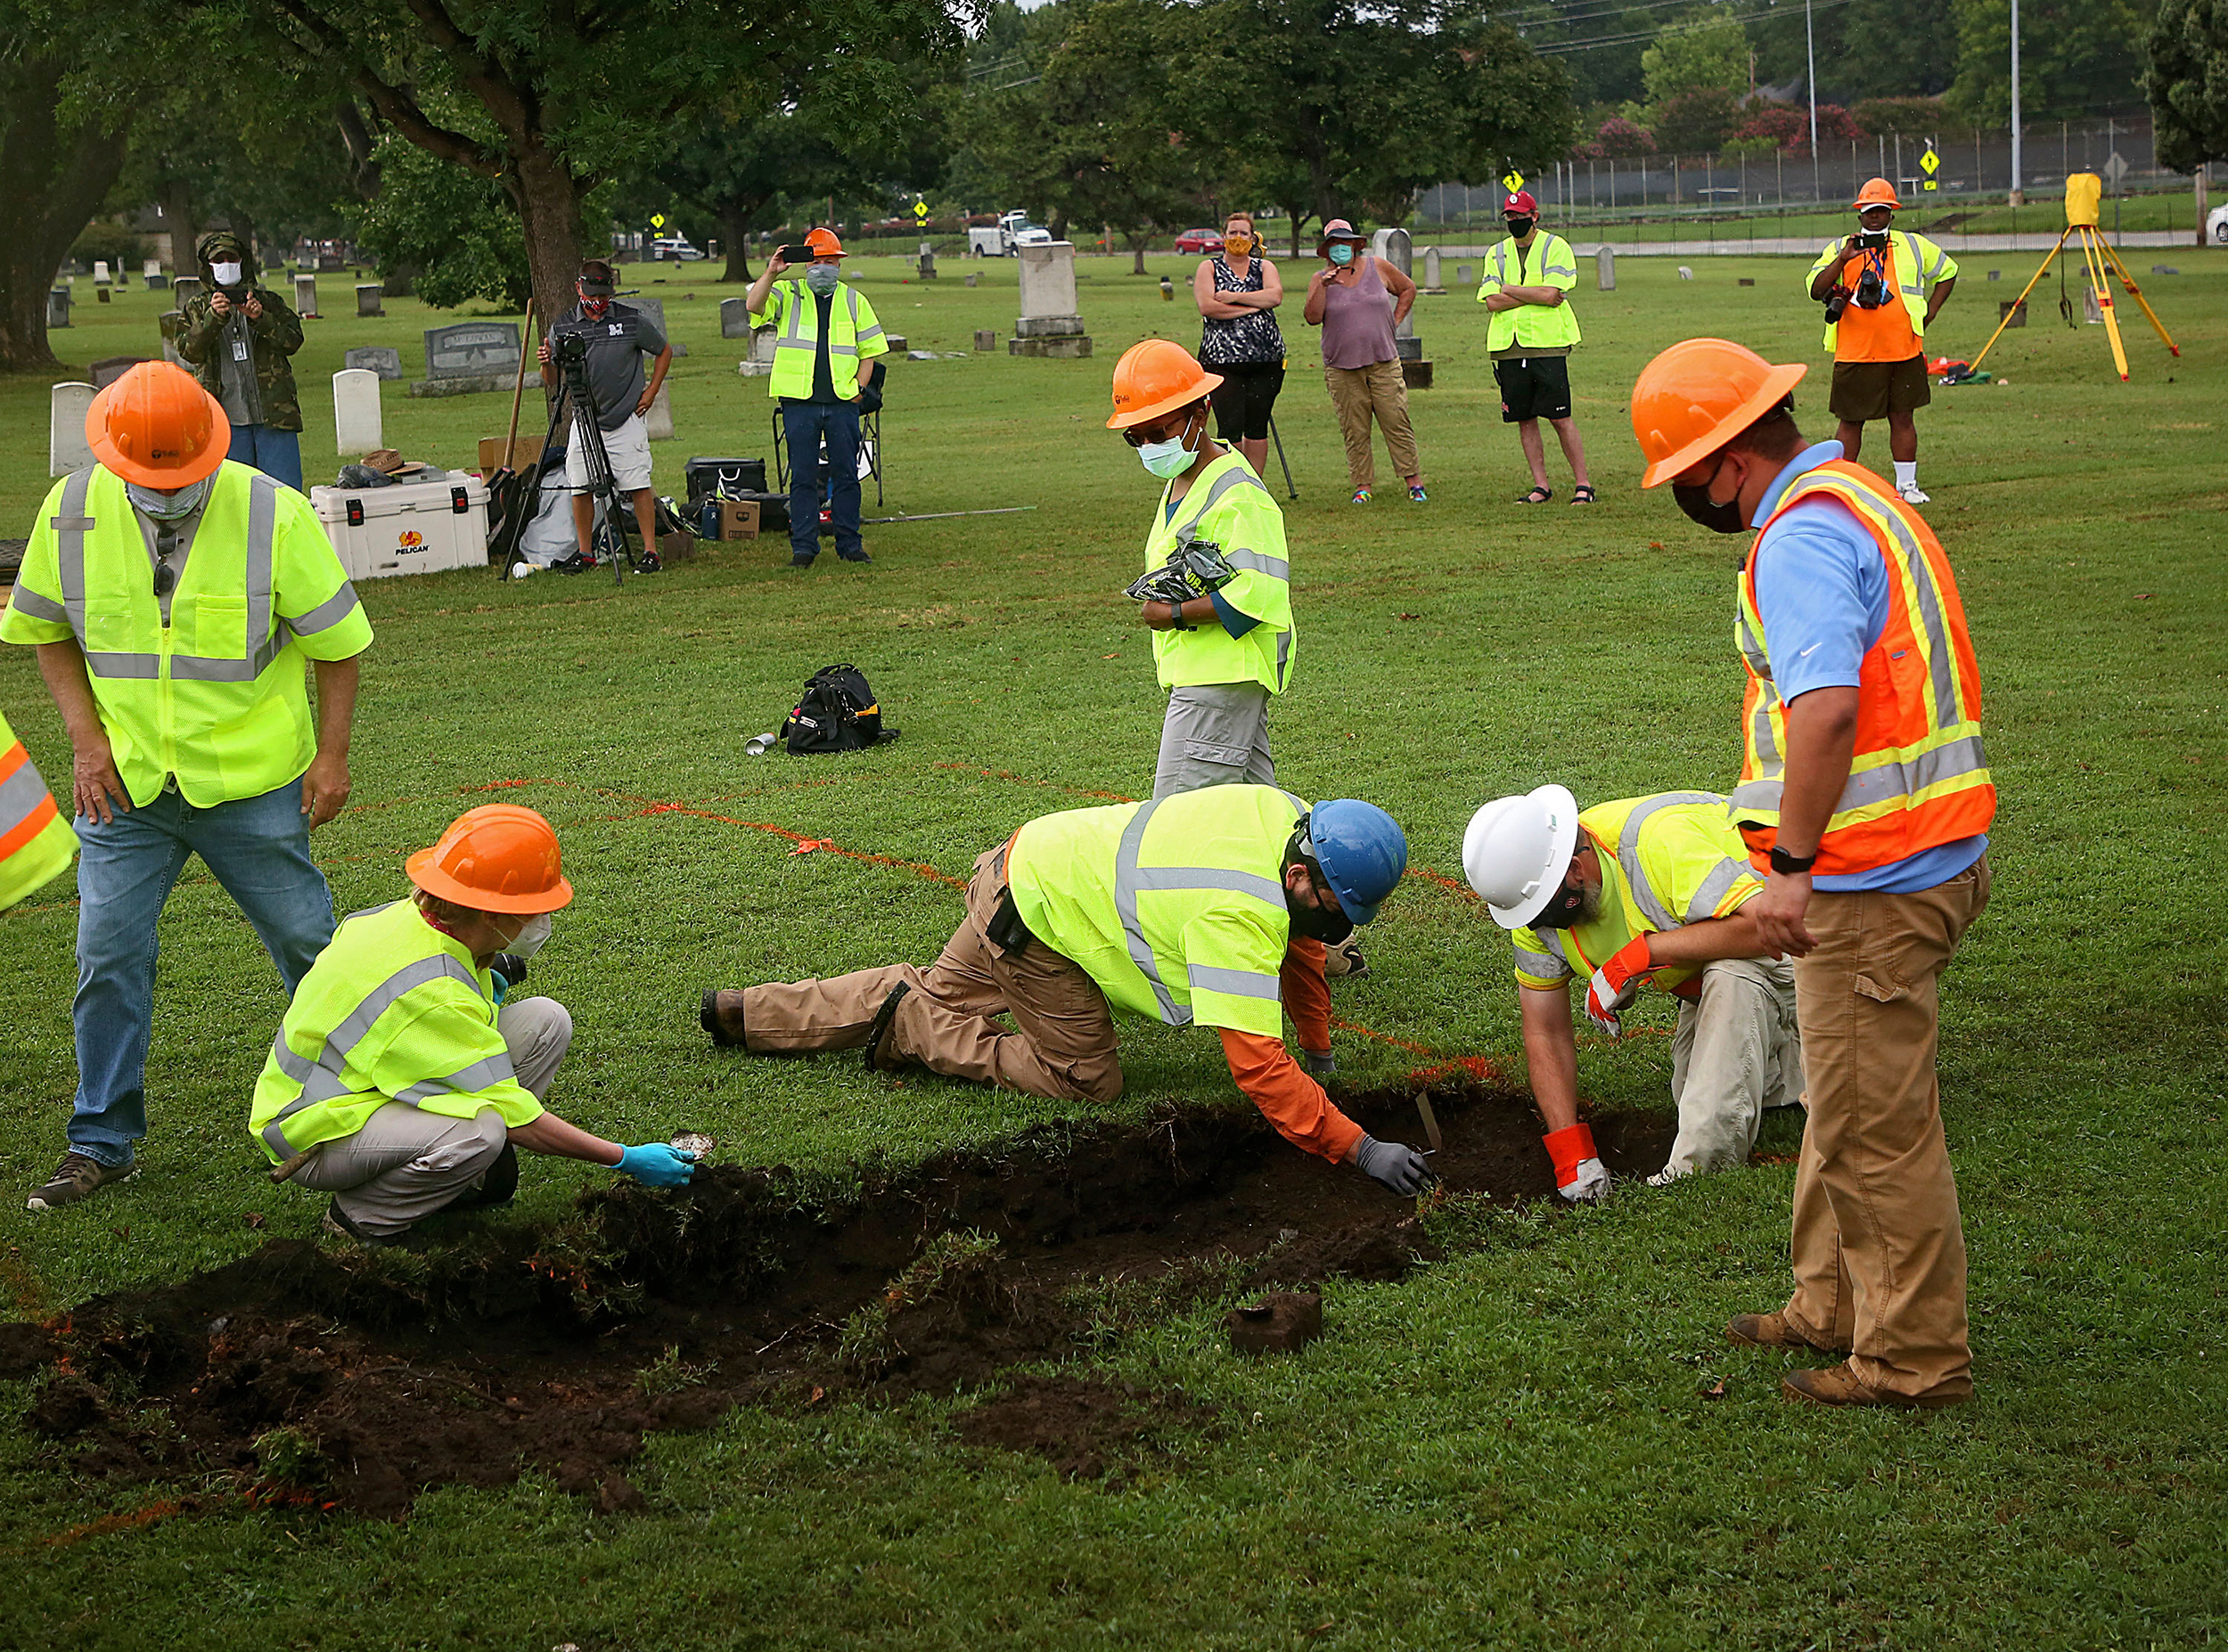 Search for a potential mass grave from the 1921 Tulsa race massacre enters second day